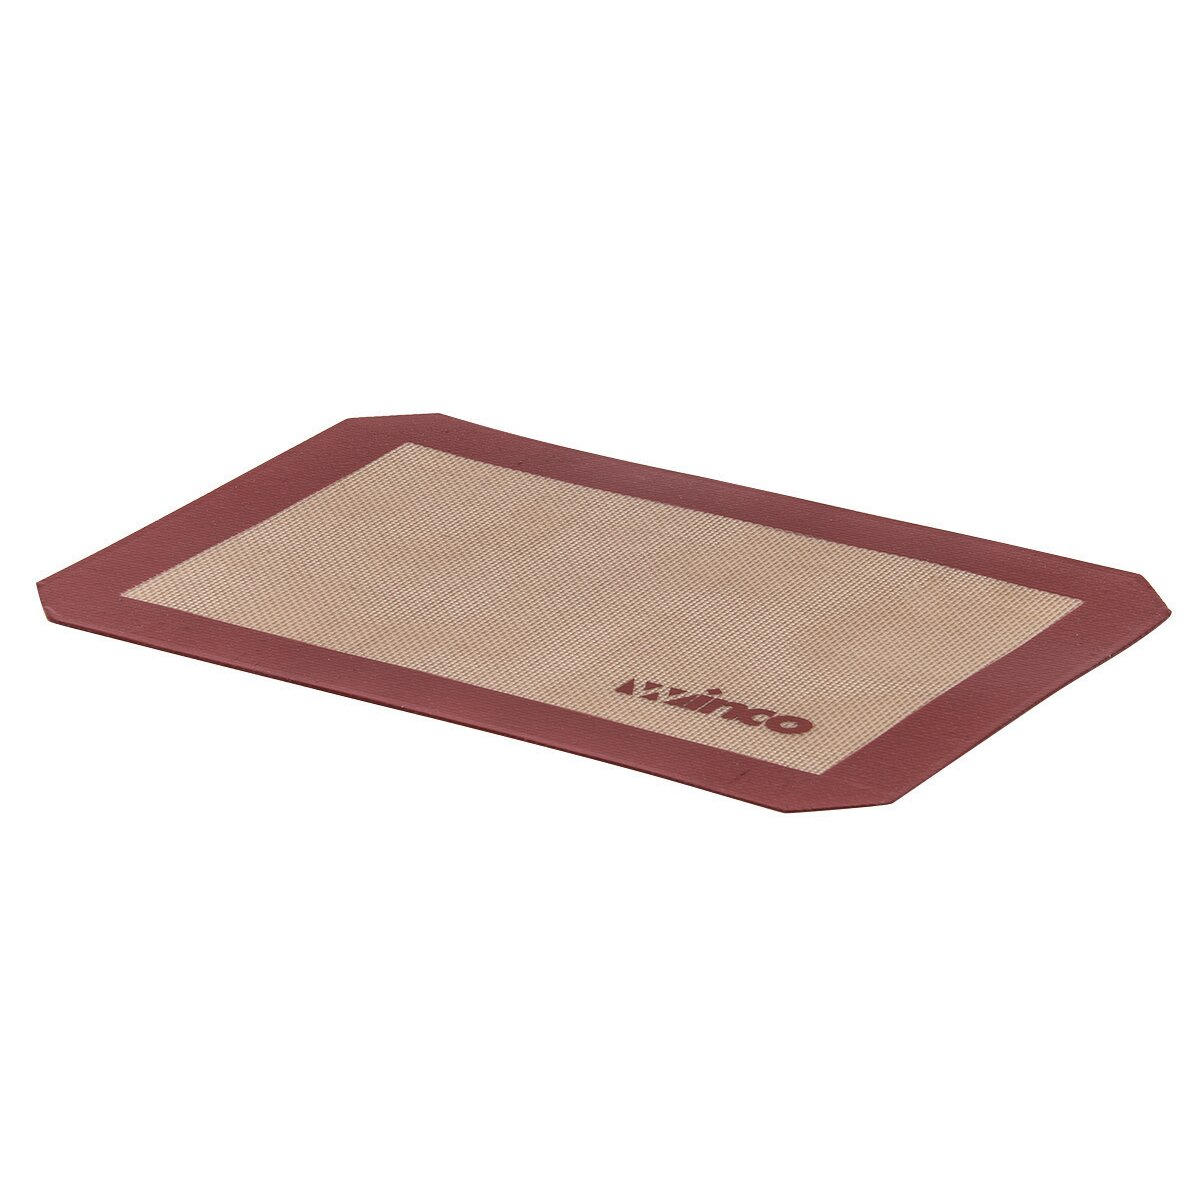 Winco Silicone Baking Mat Amp Reviews Wayfair